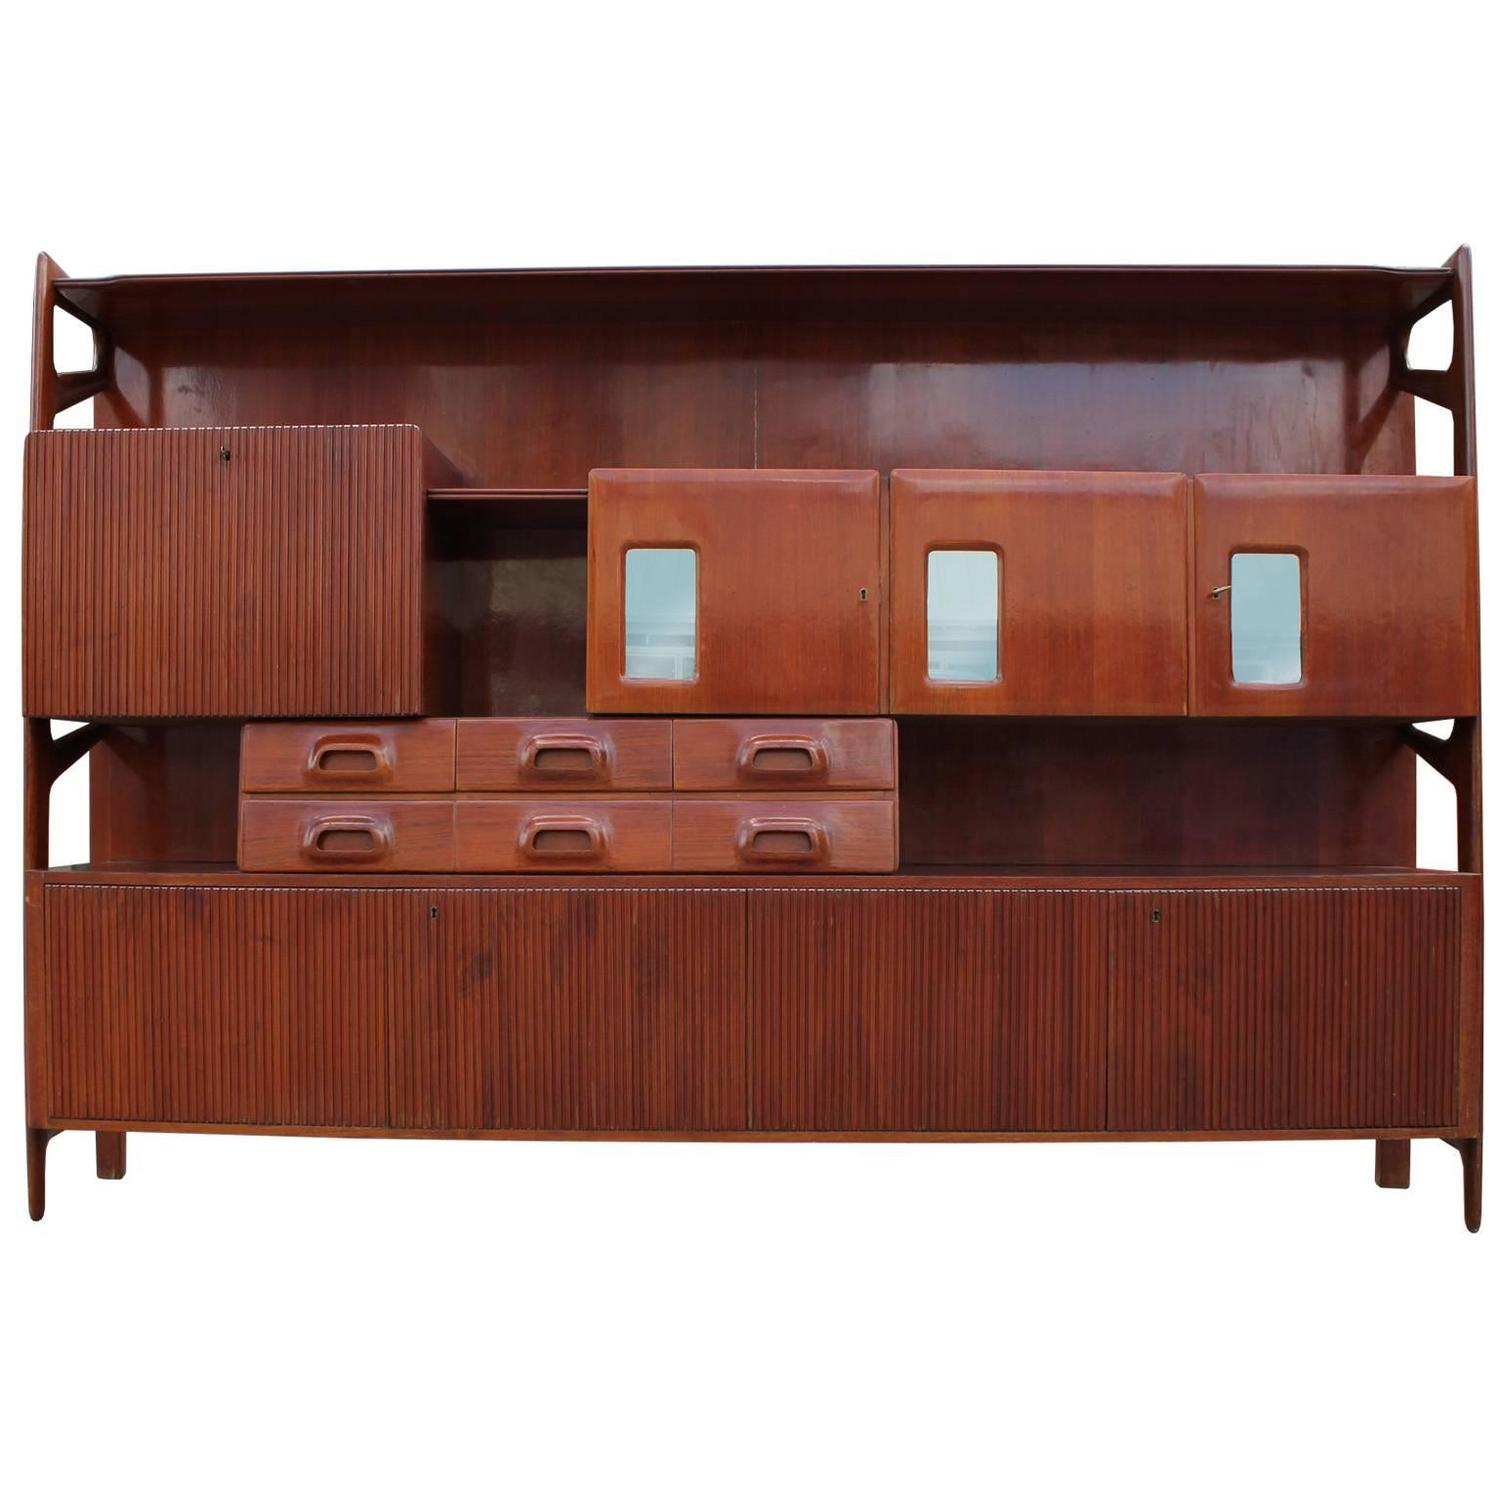 monumental and incredible italian sculptural wall unit or